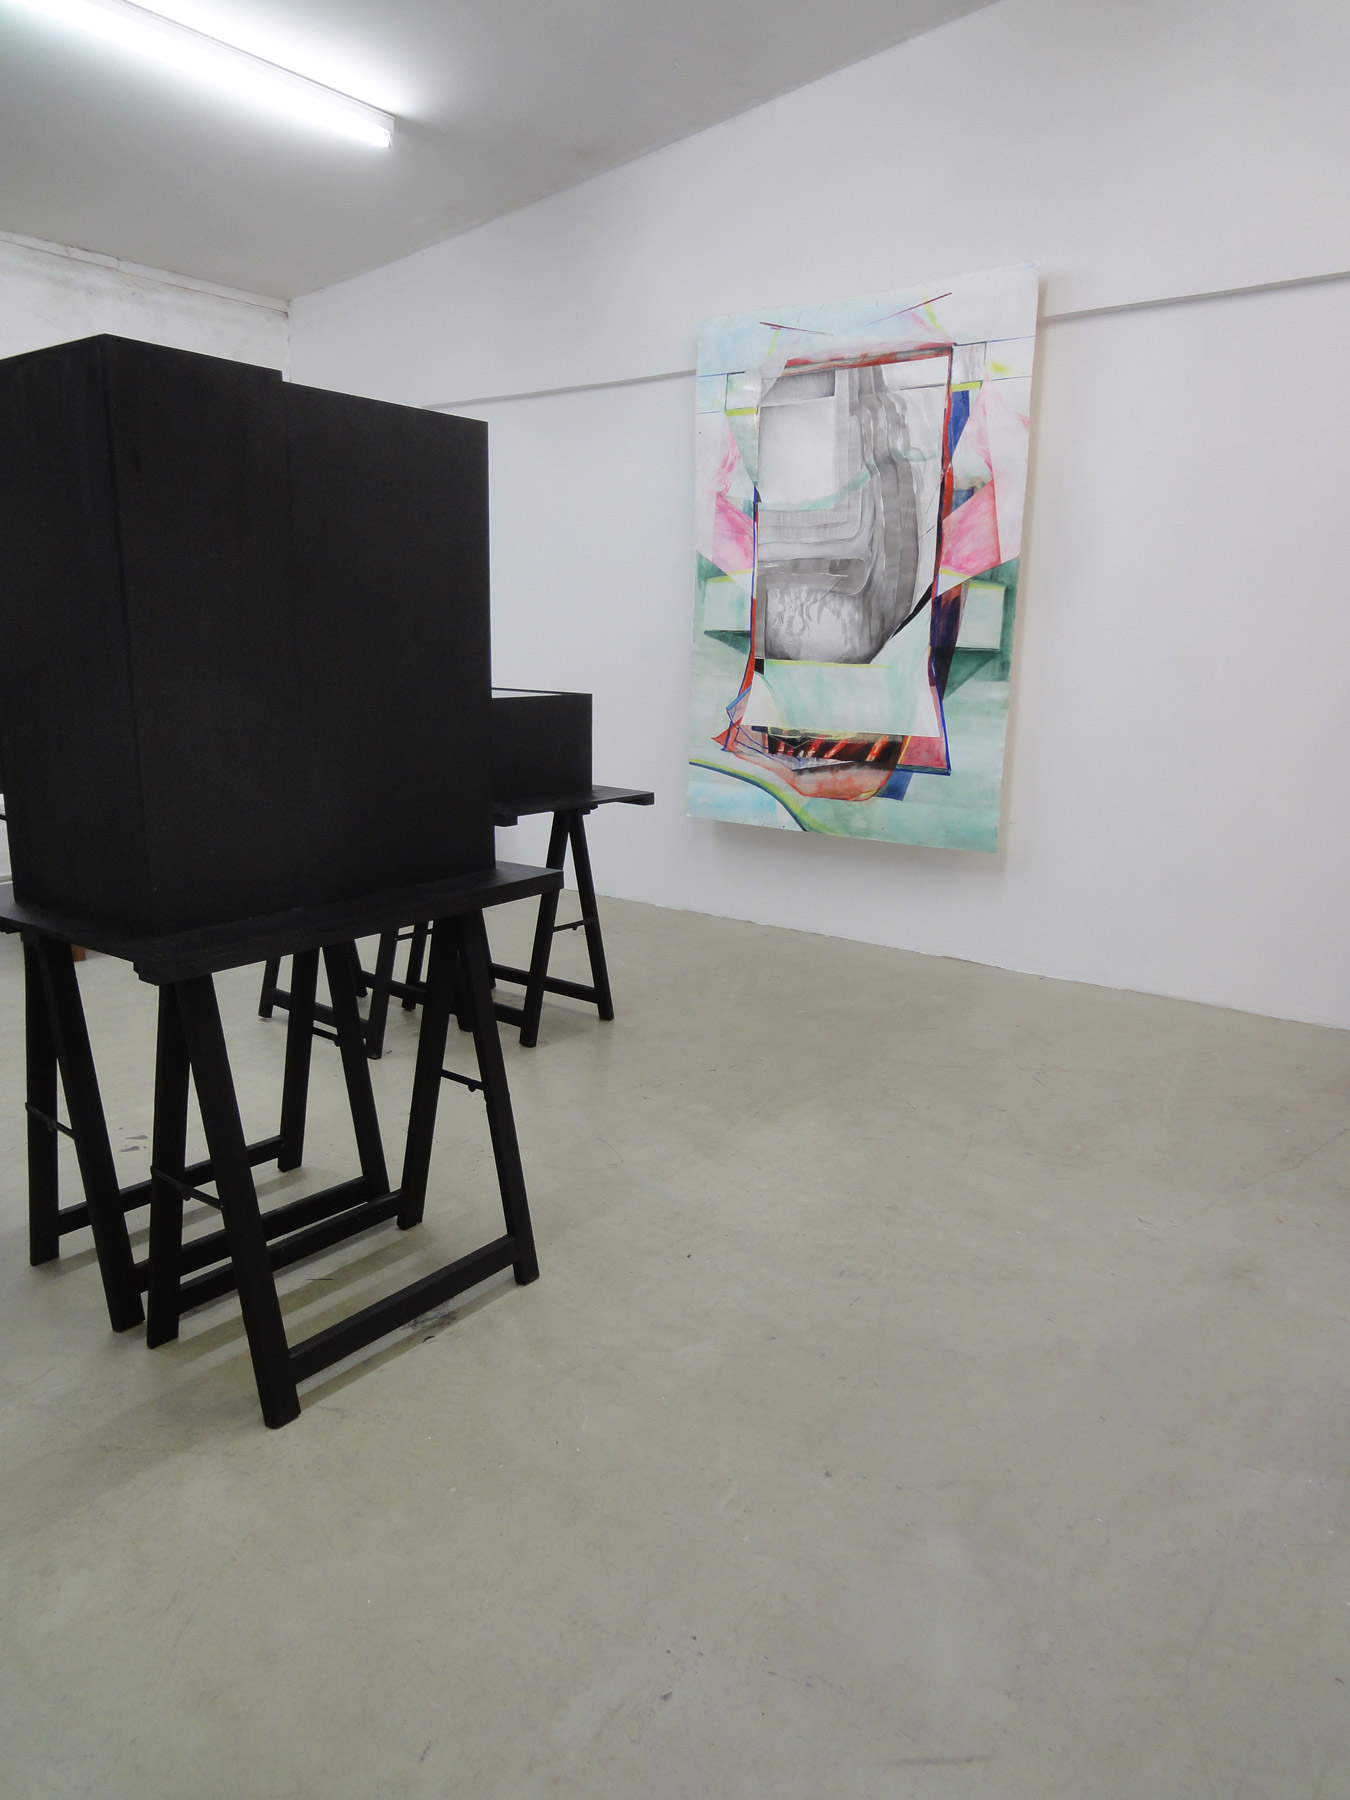 Nina Annabelle Märkl | Possible sculptures for a life somehow distracted | Installation with Jenny Forster (painting) | 2015